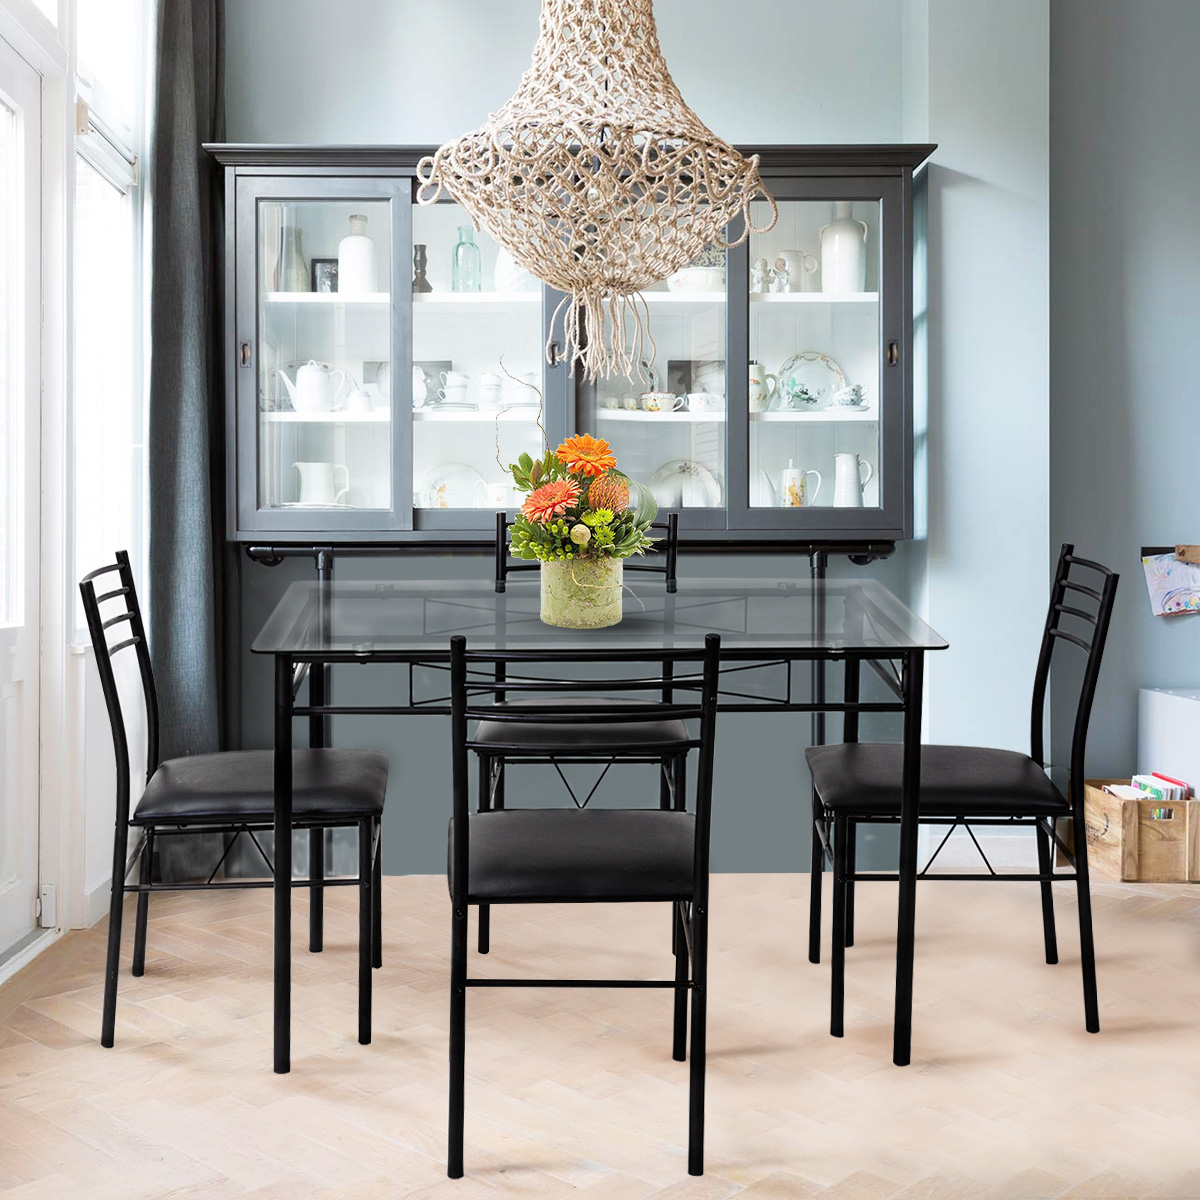 Kitchen table set Pub Style Product Image Gymax Piece Dining Set Glass Top Table Upholstered Chairs Kitchen Room Furniture Walmart Dining Room Sets